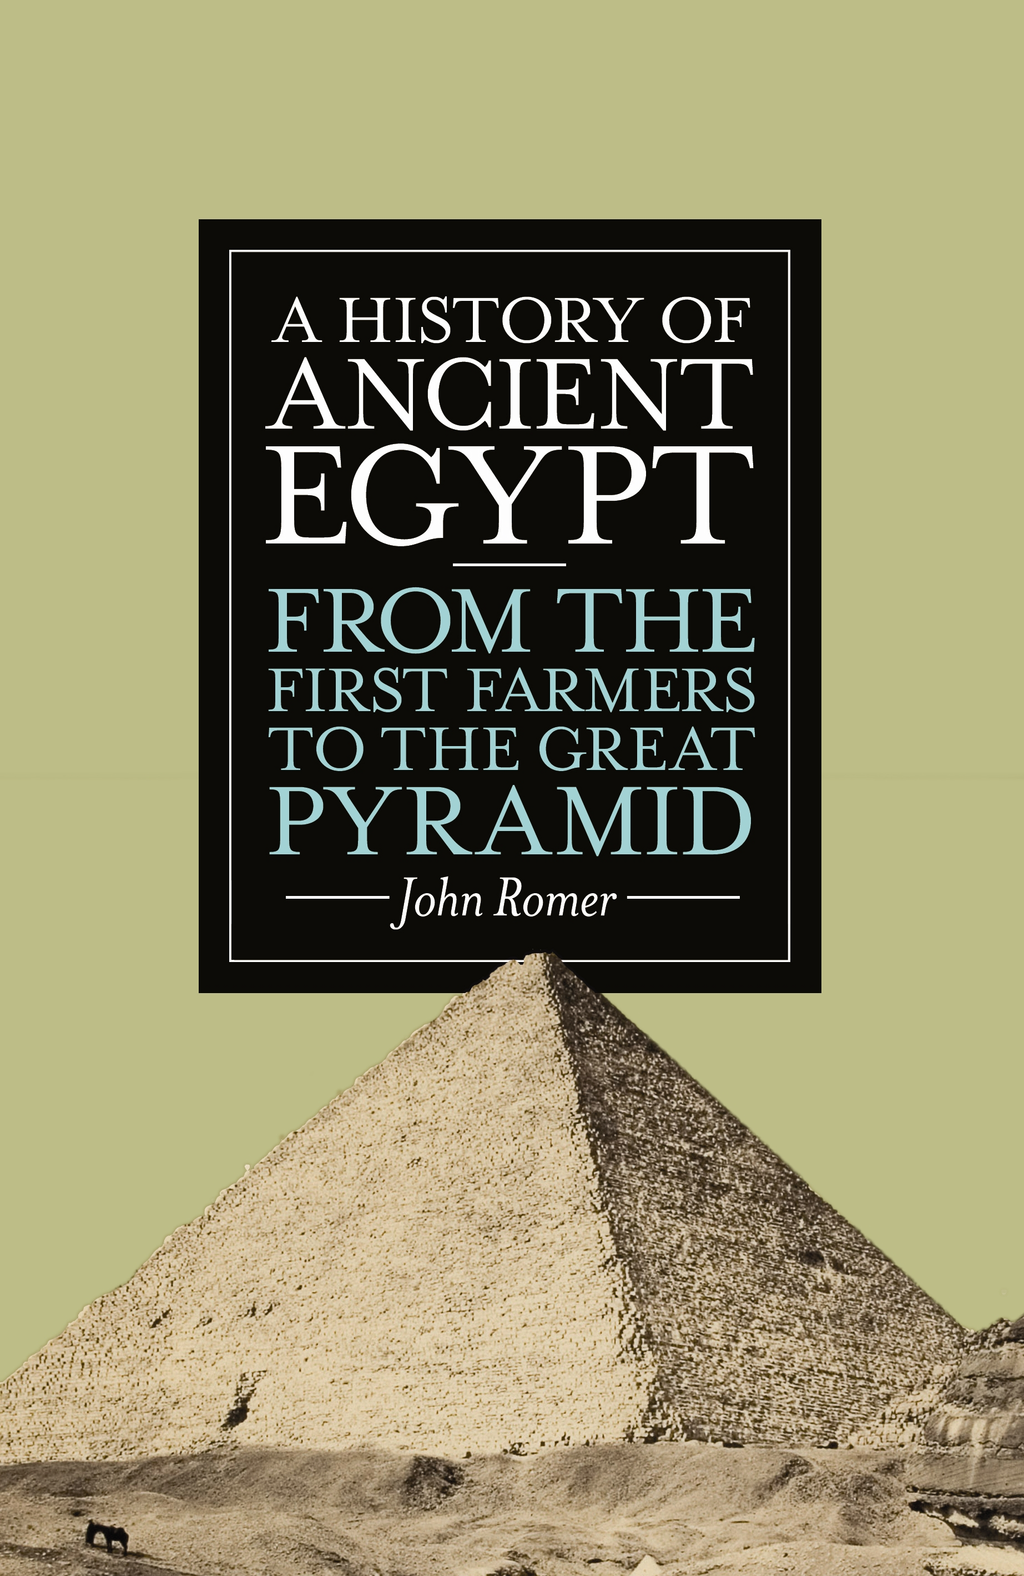 A History of Ancient Egypt From the First Farmers to the Great Pyramid